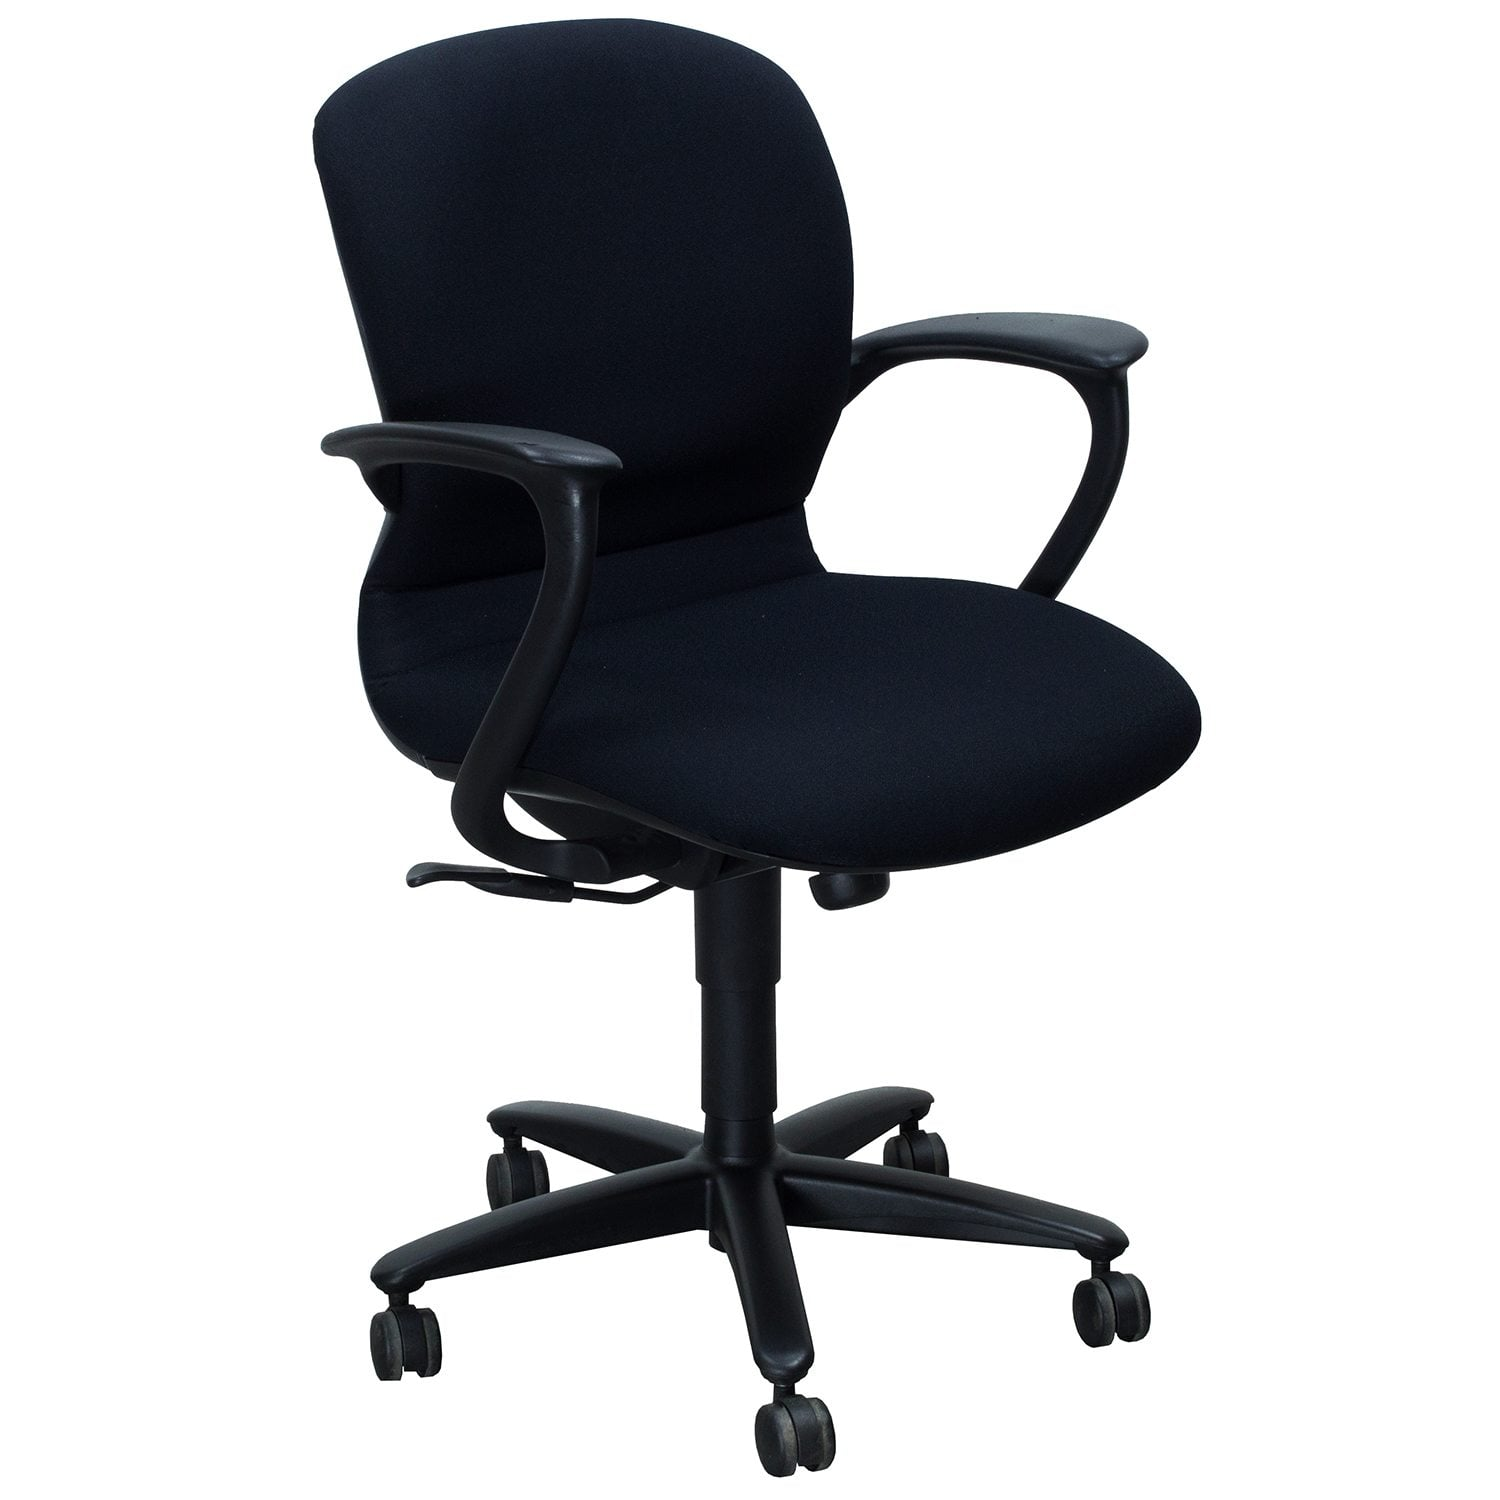 Haworth Improv Desk Used Conference Chair Black